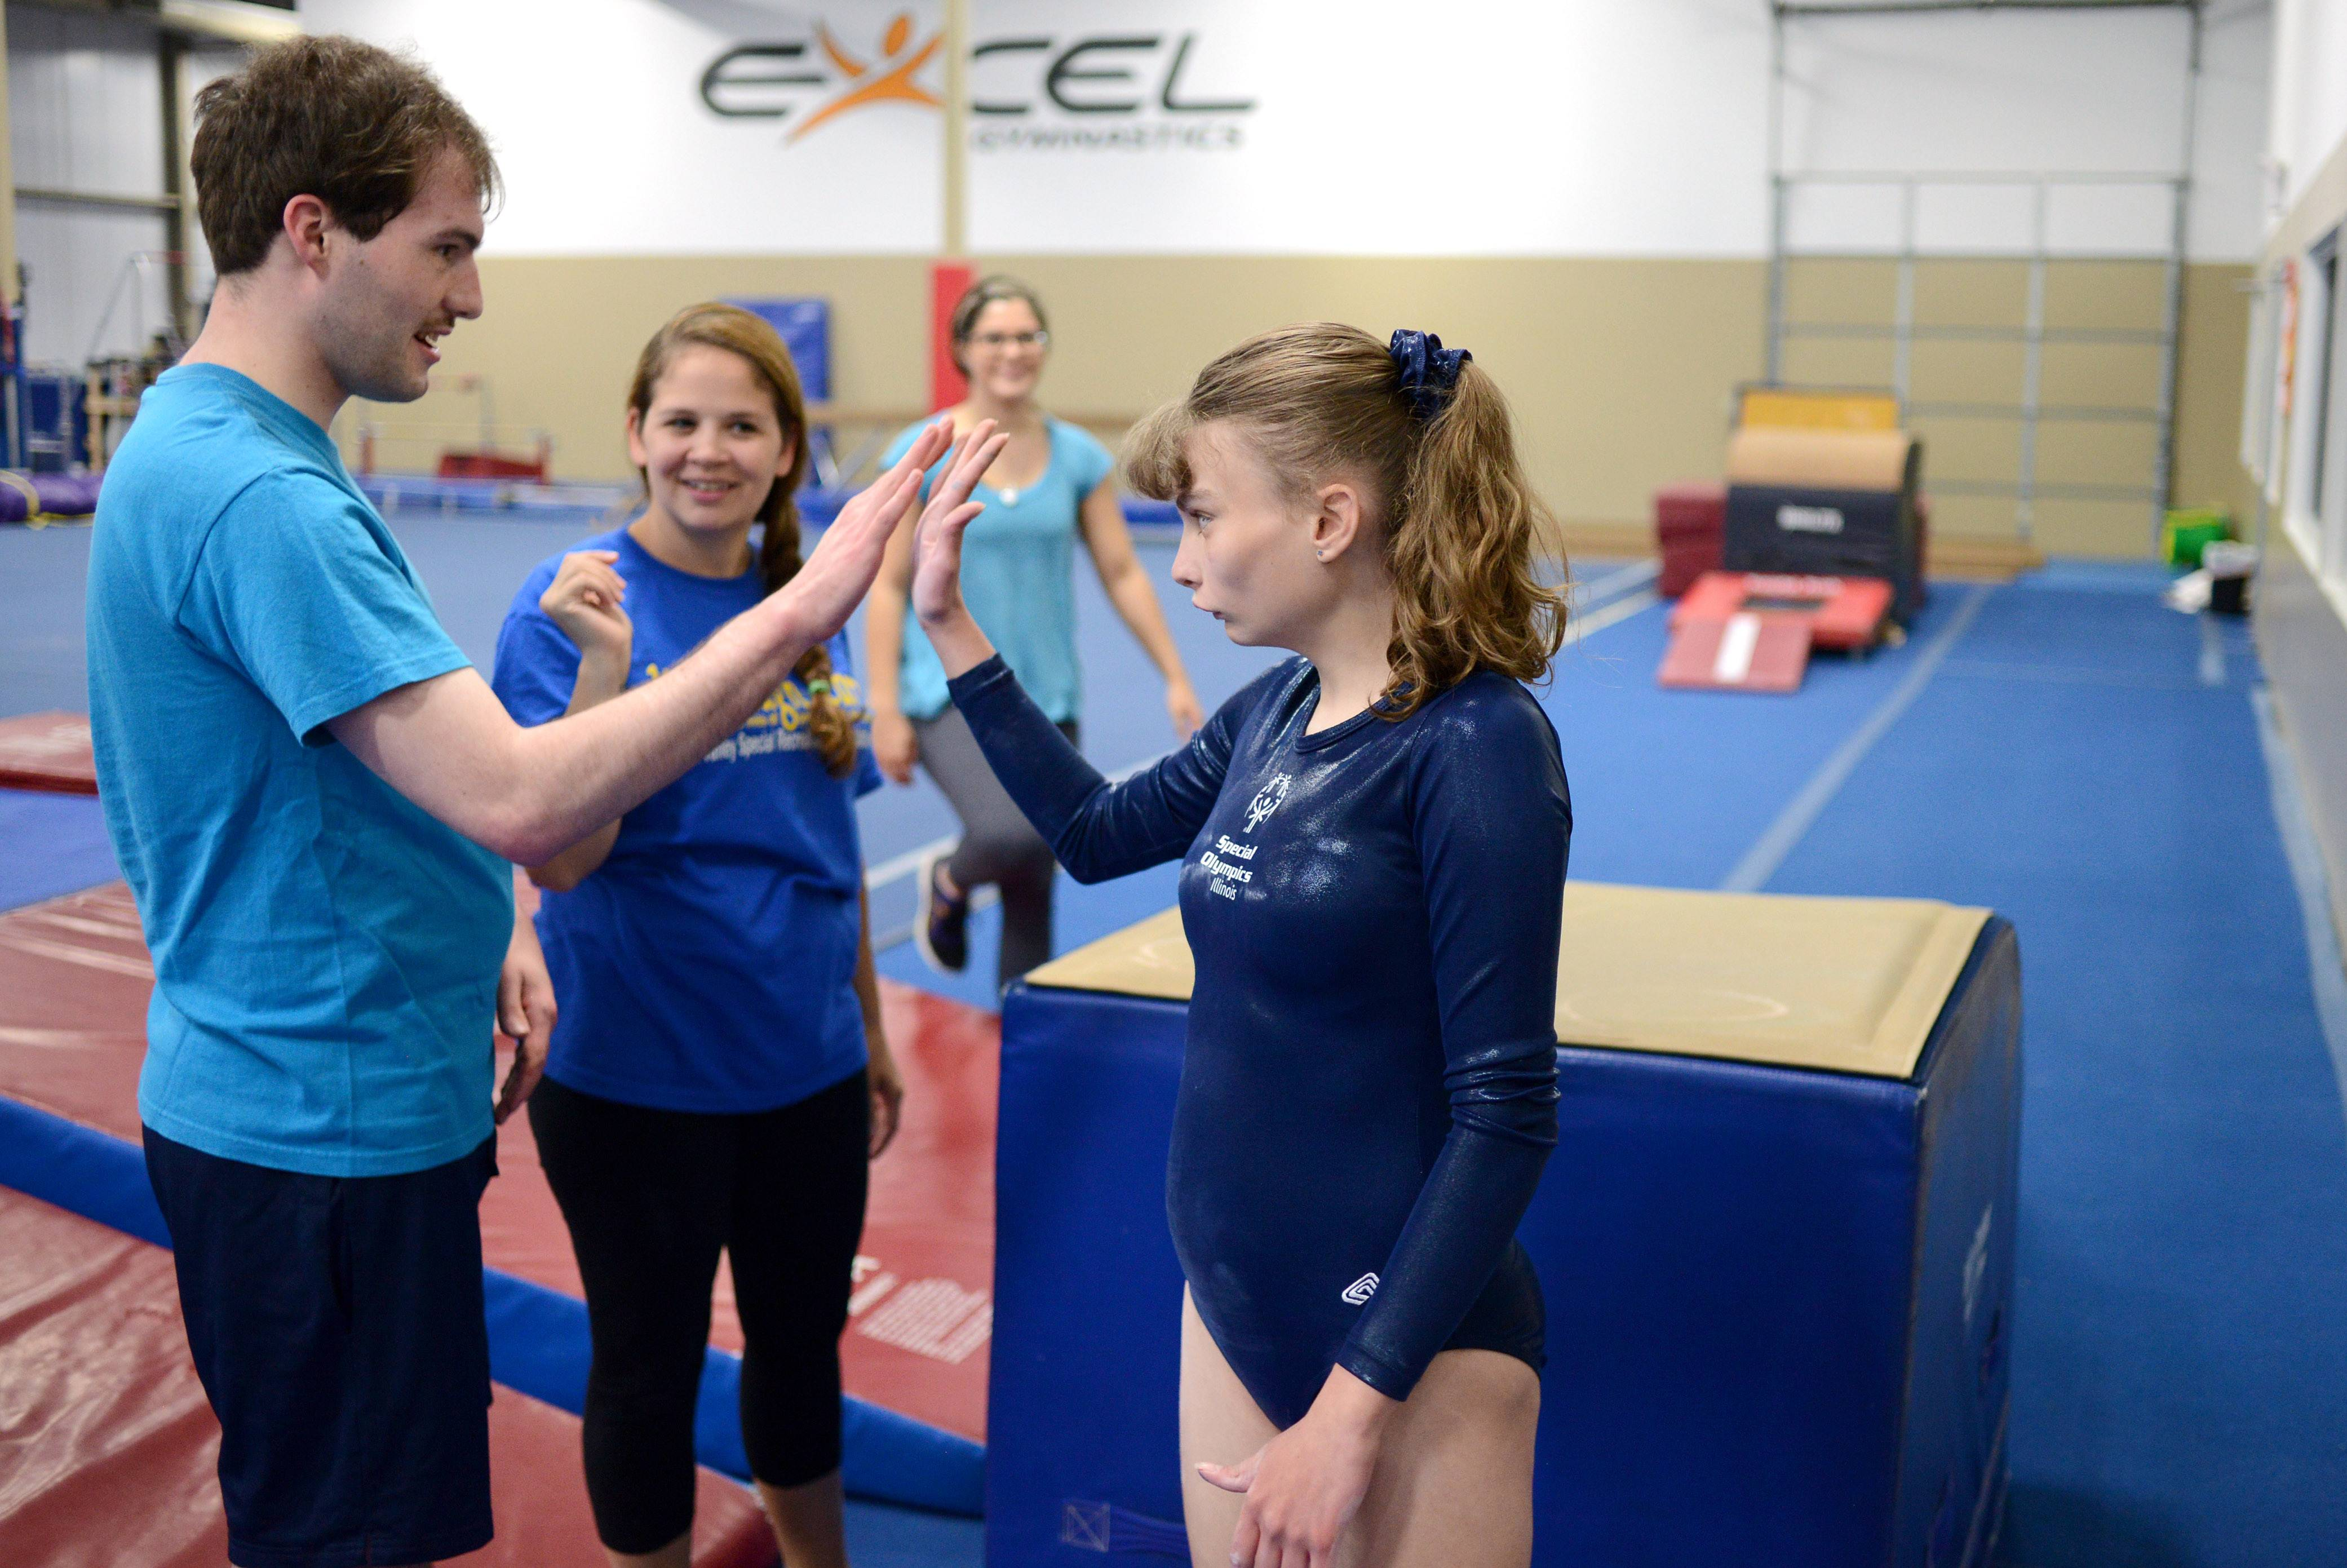 As head gymnastics coach Heather Giza of Fox Valley Recreation Association stands by, Special Olympics gymnast William Hanzlik of North Aurora gives Janna Blowers, 19, of Campton Hills, a high-five after her practice on the vault at Excel Gymnastics in Geneva. Blowers will be competing in the 2014 USA Games in New Jersey.